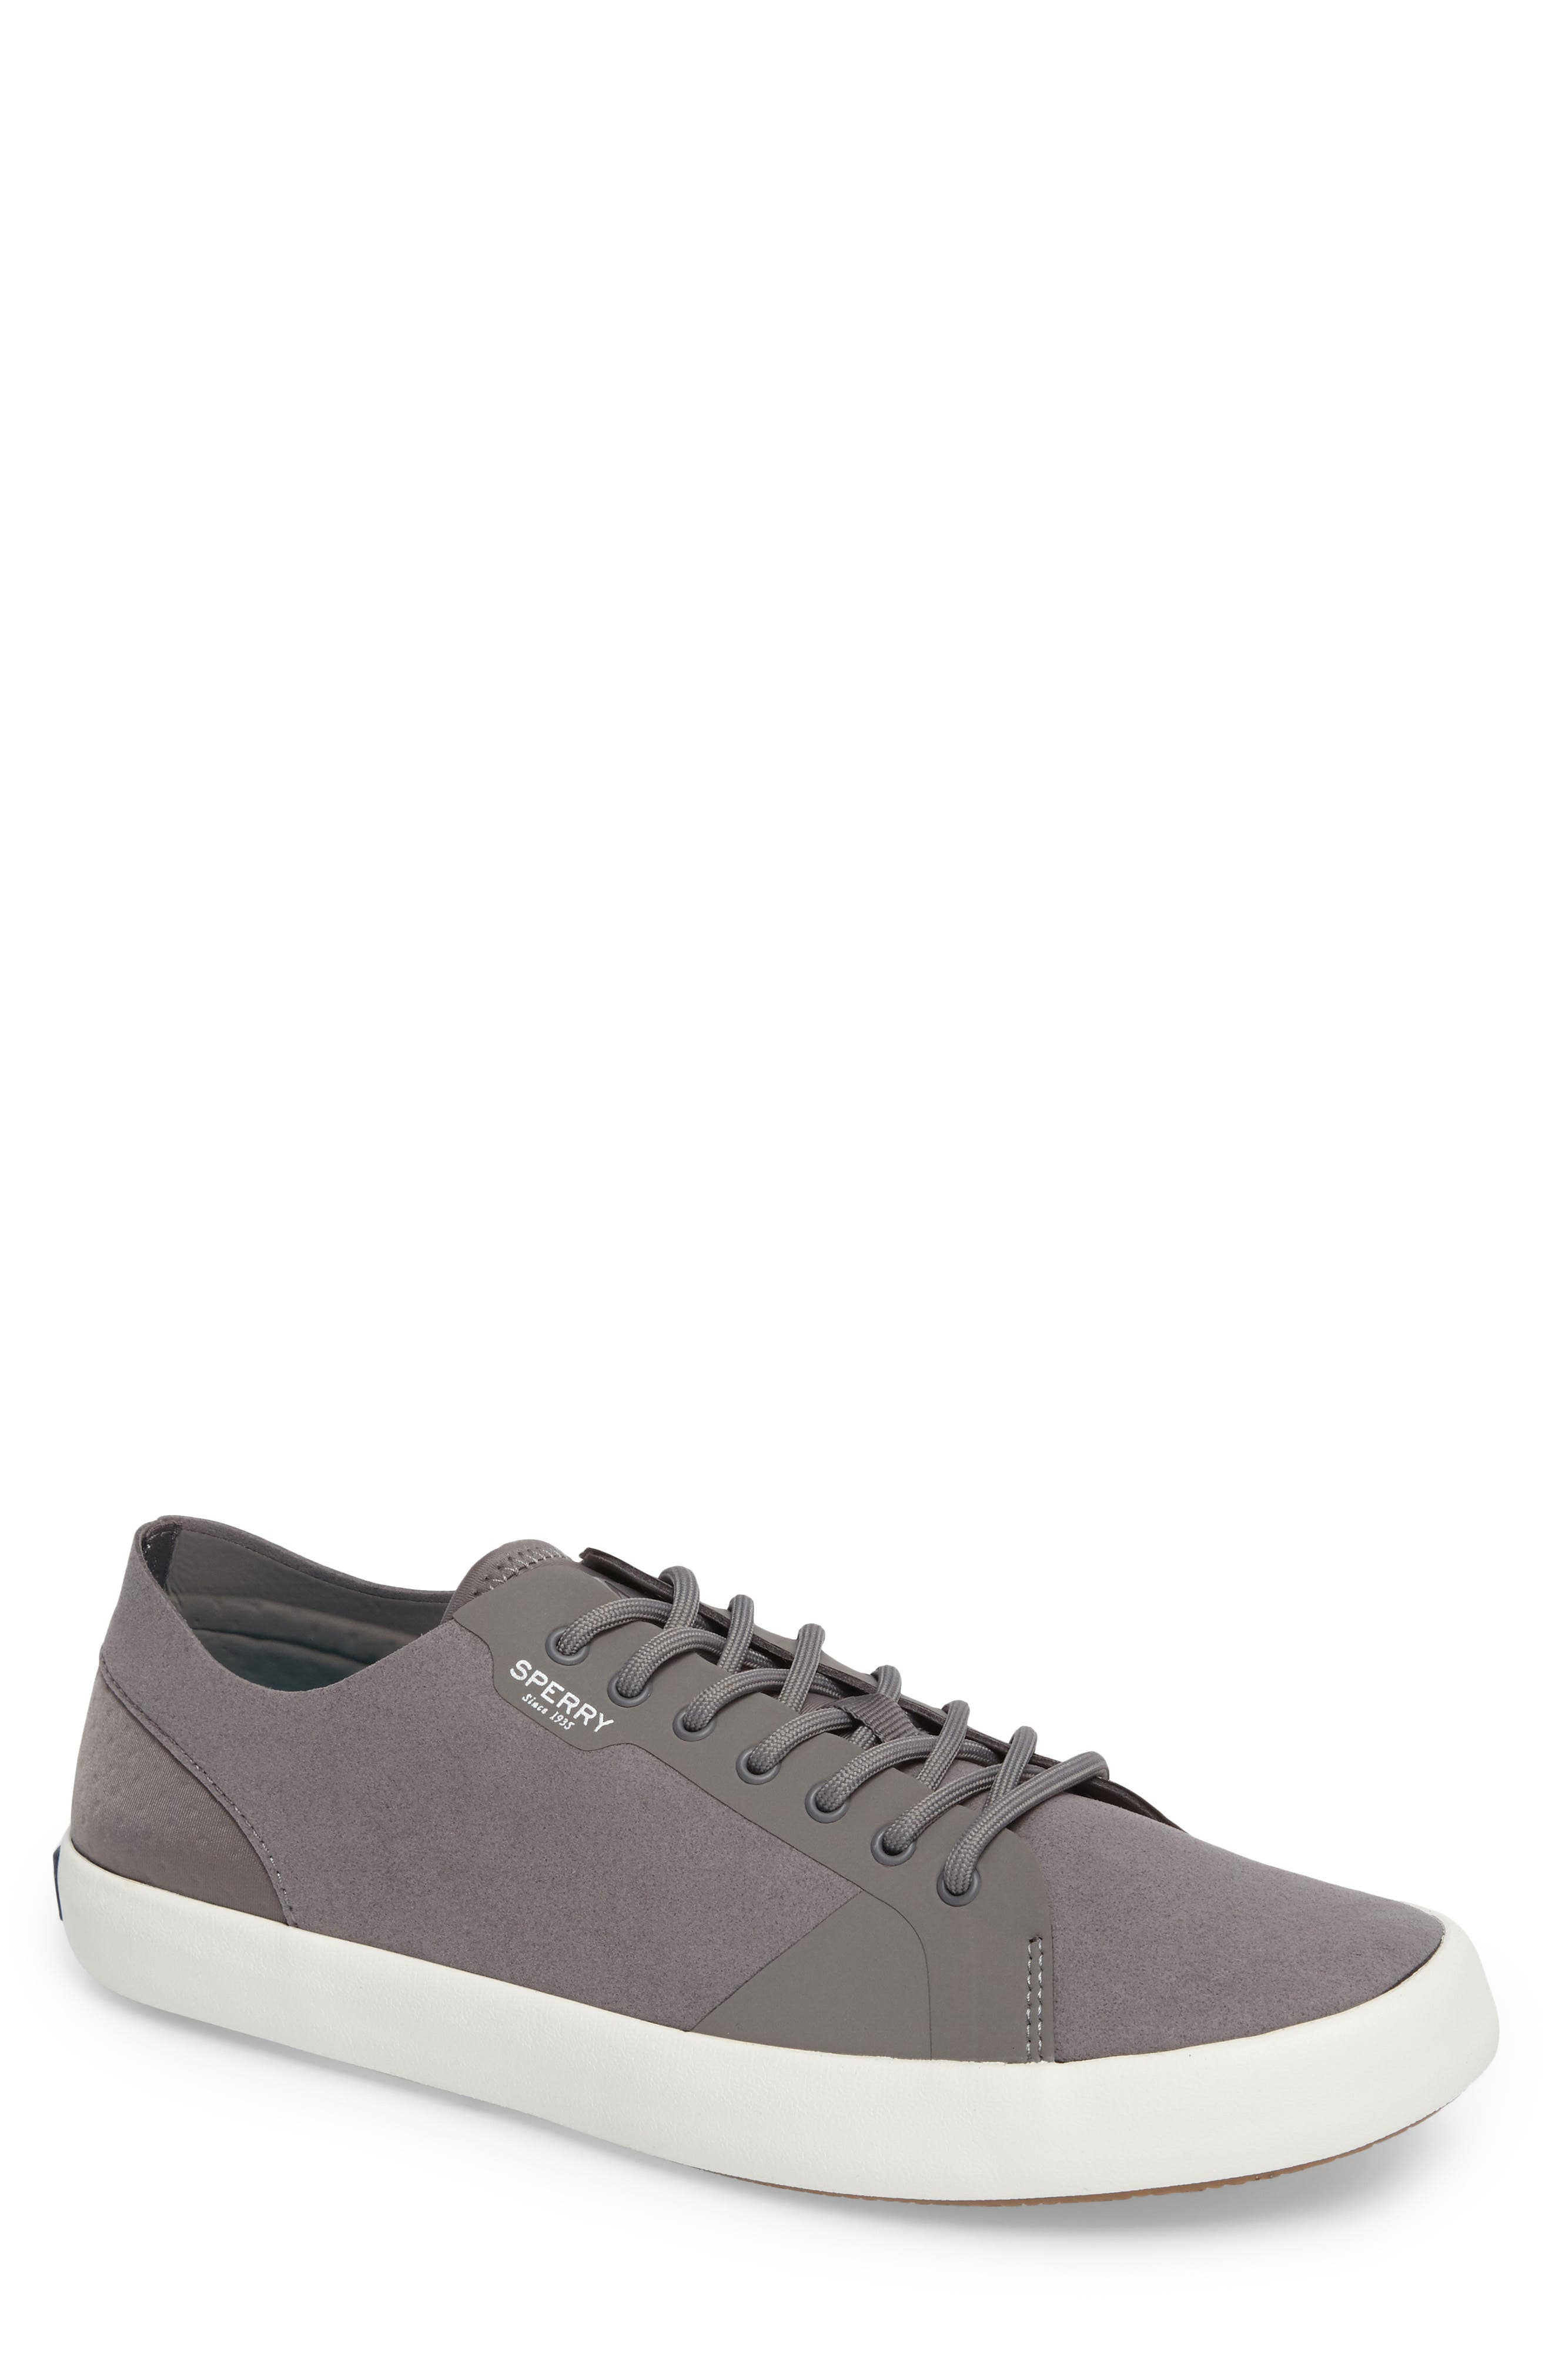 Sperry Flex Deck LTT Sneaker (Men)